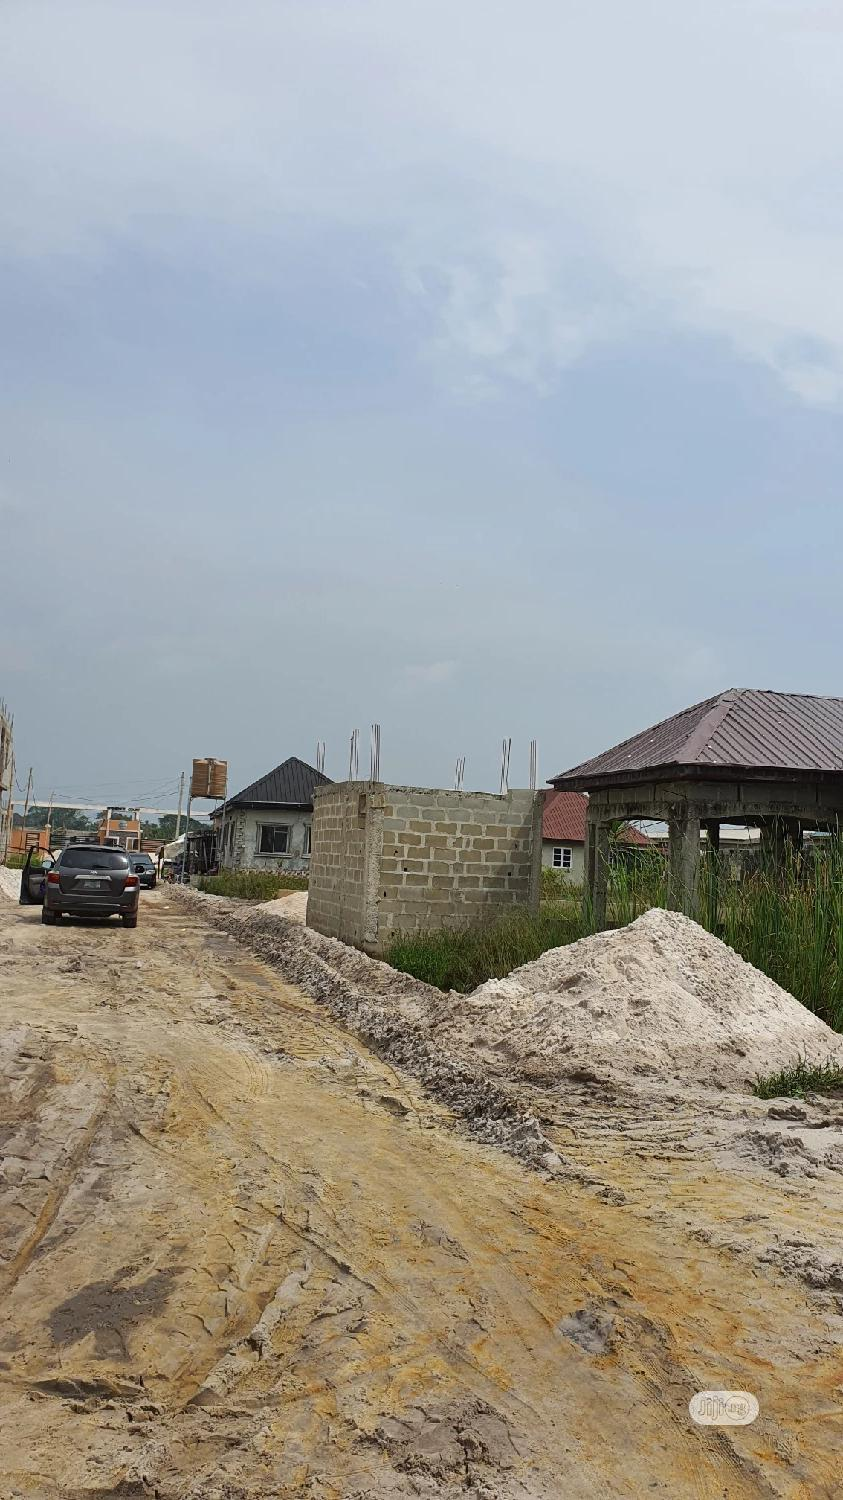 Instant Allocation Land, Developed Area Opp Beachwood Estate | Land & Plots For Sale for sale in Ajah, Lagos State, Nigeria